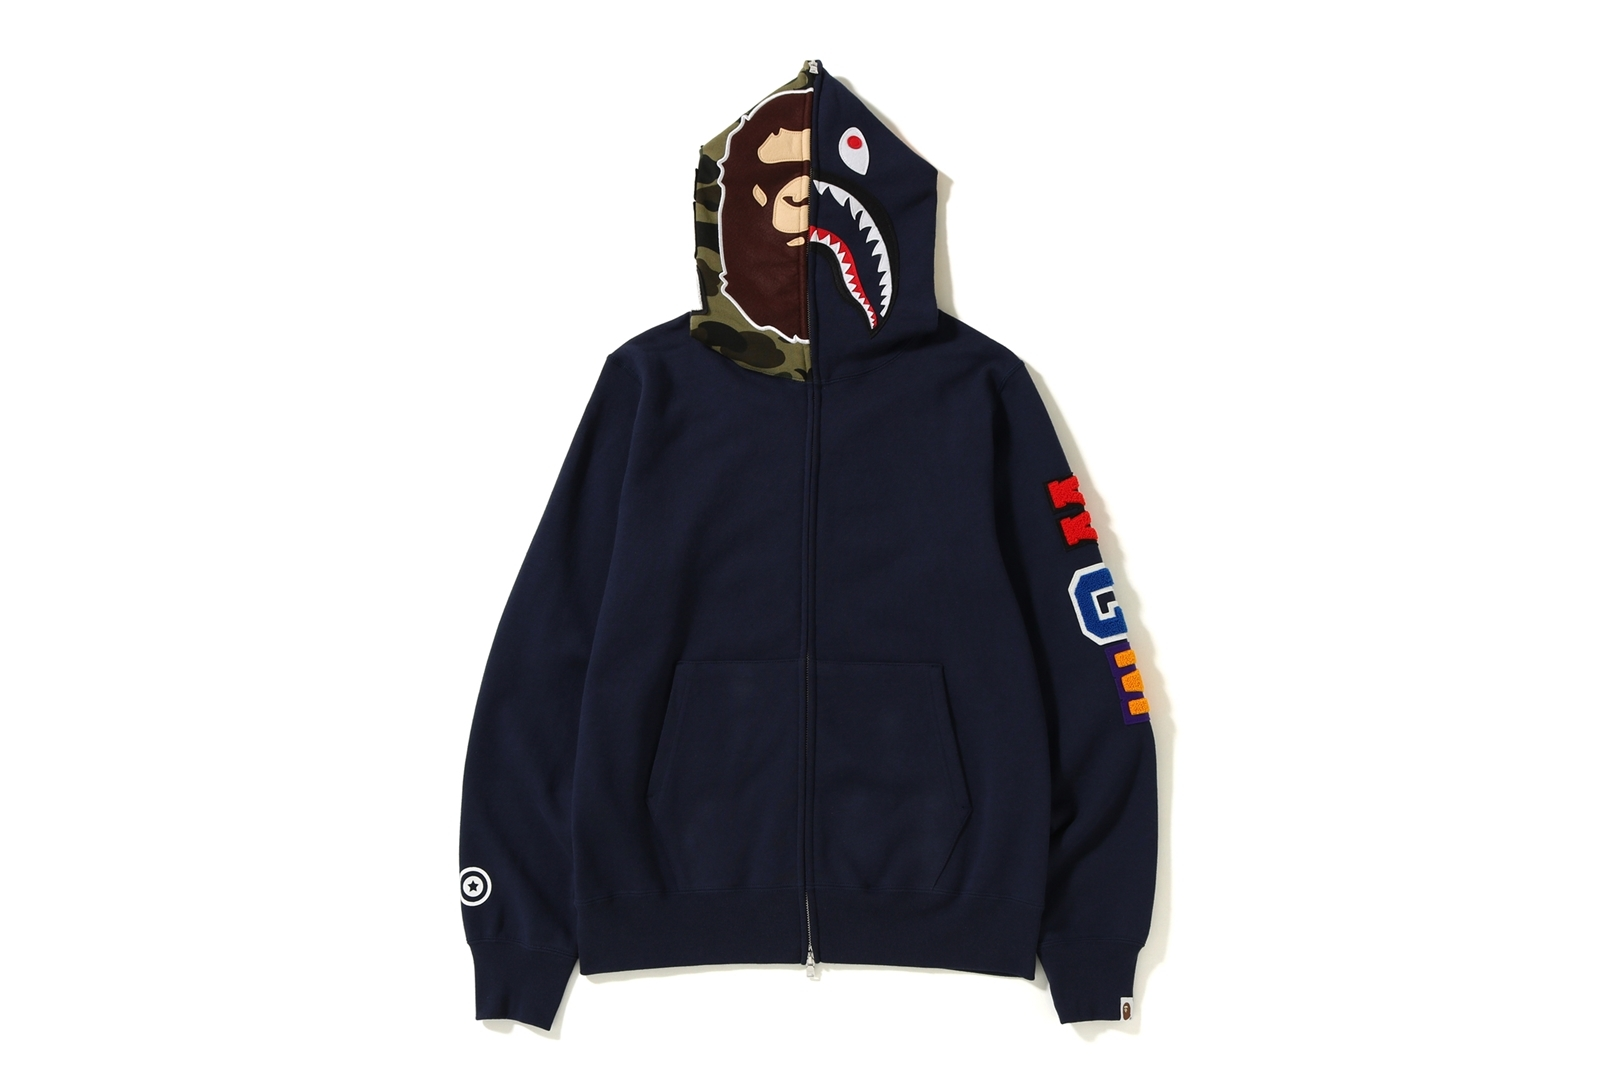 2ND APE SHARK FULL ZIP HOODIE_a0174495_17200861.jpg